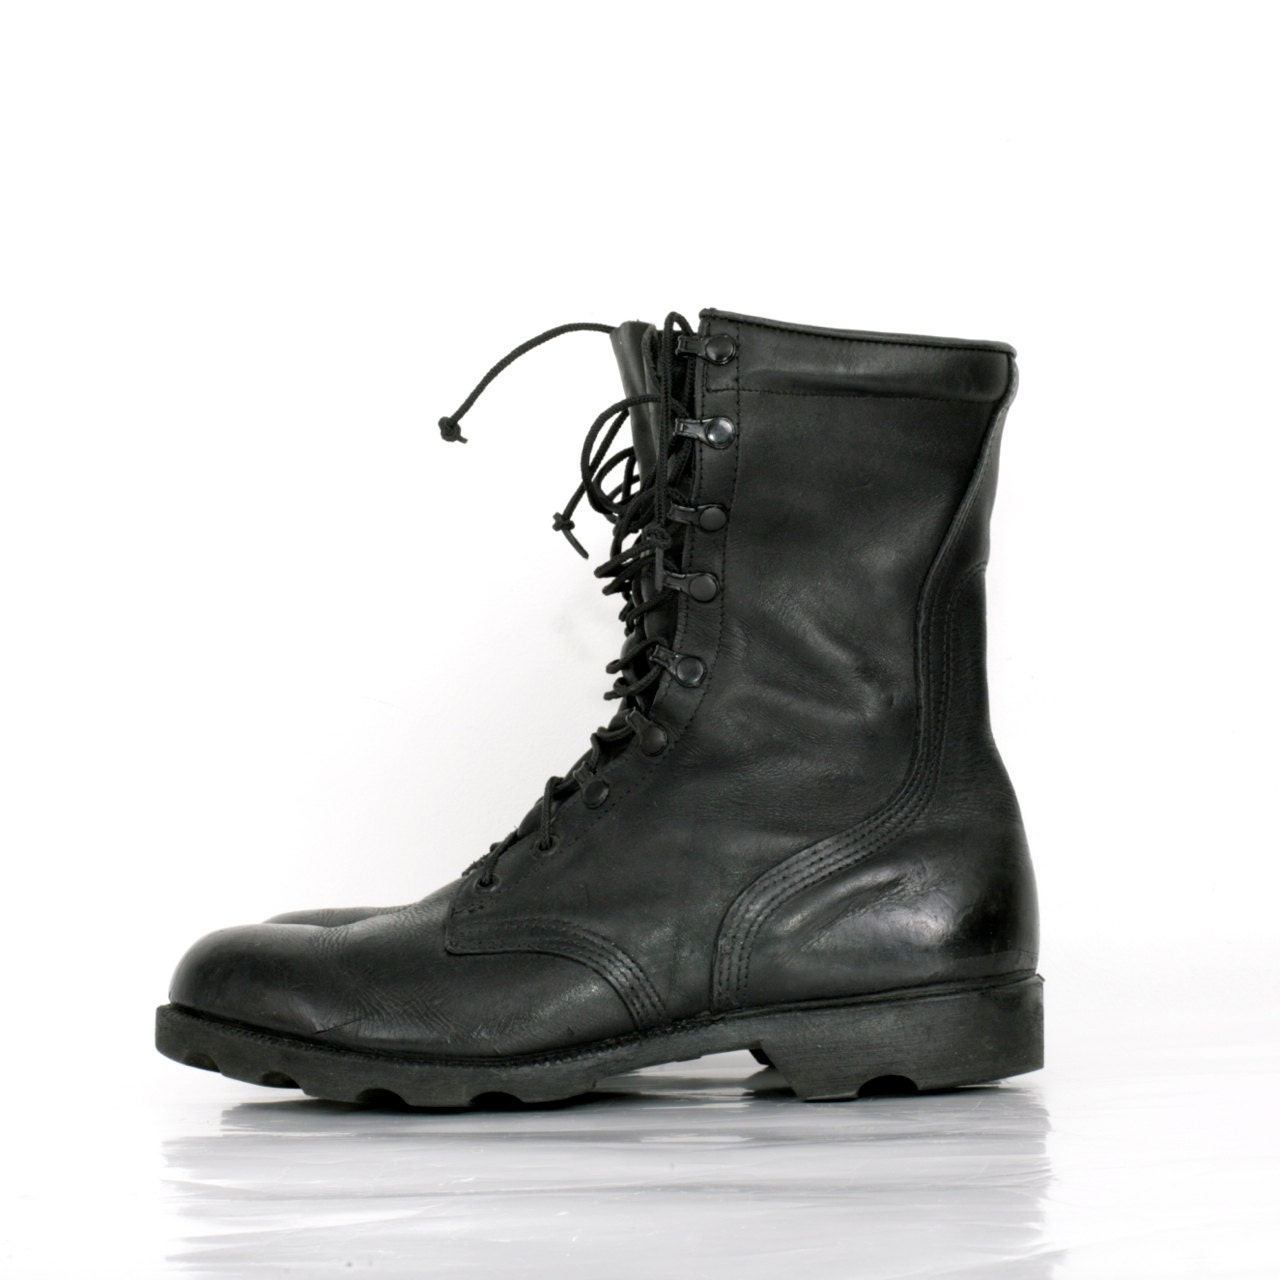 vintage black combat jump boots in leather by xouda on etsy